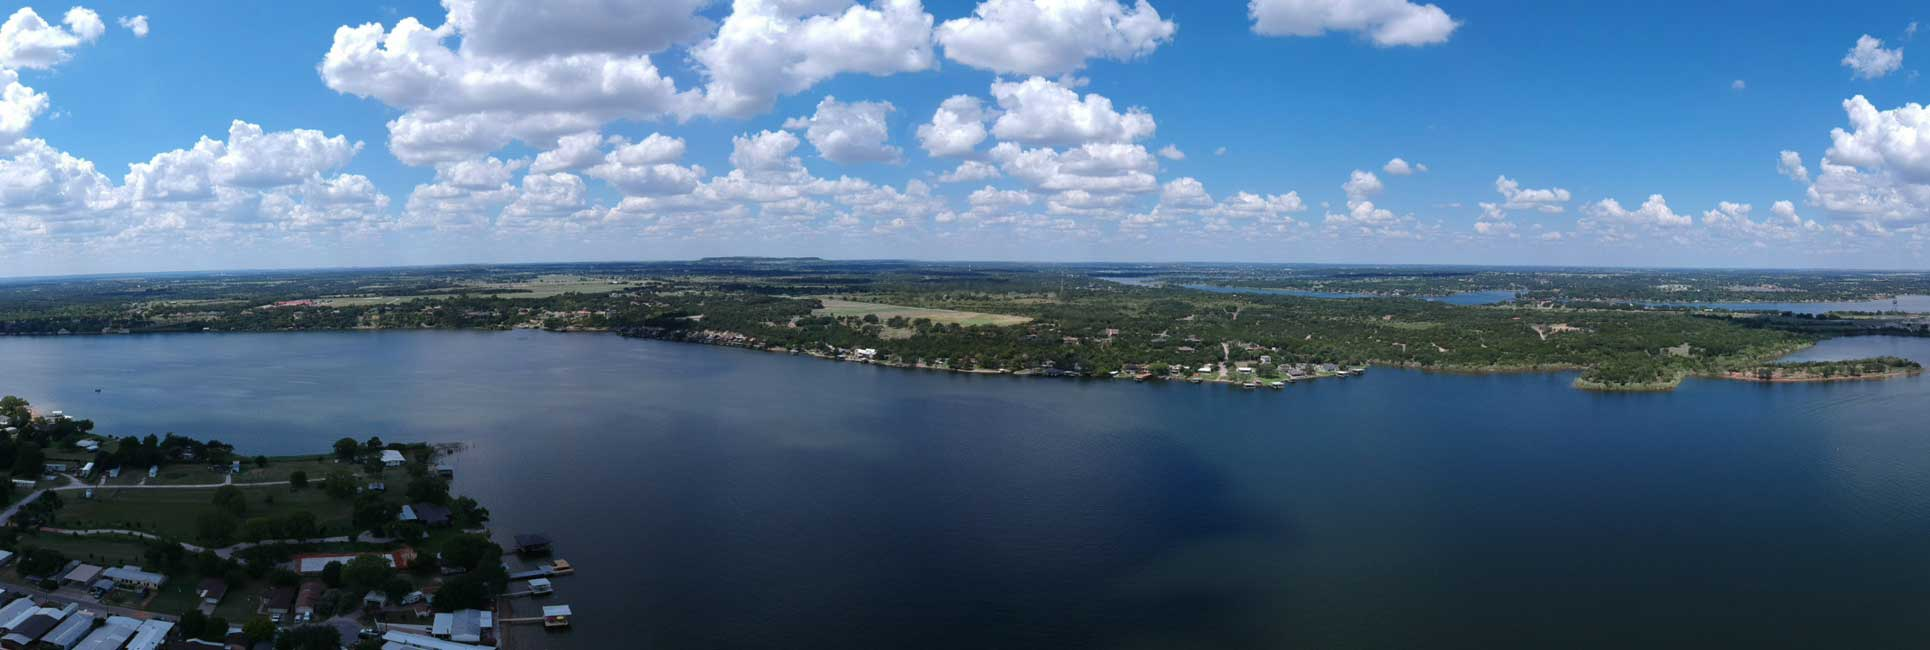 An aerial shot of Lake Granbury that includes docks, houses, fishing boats and blue water